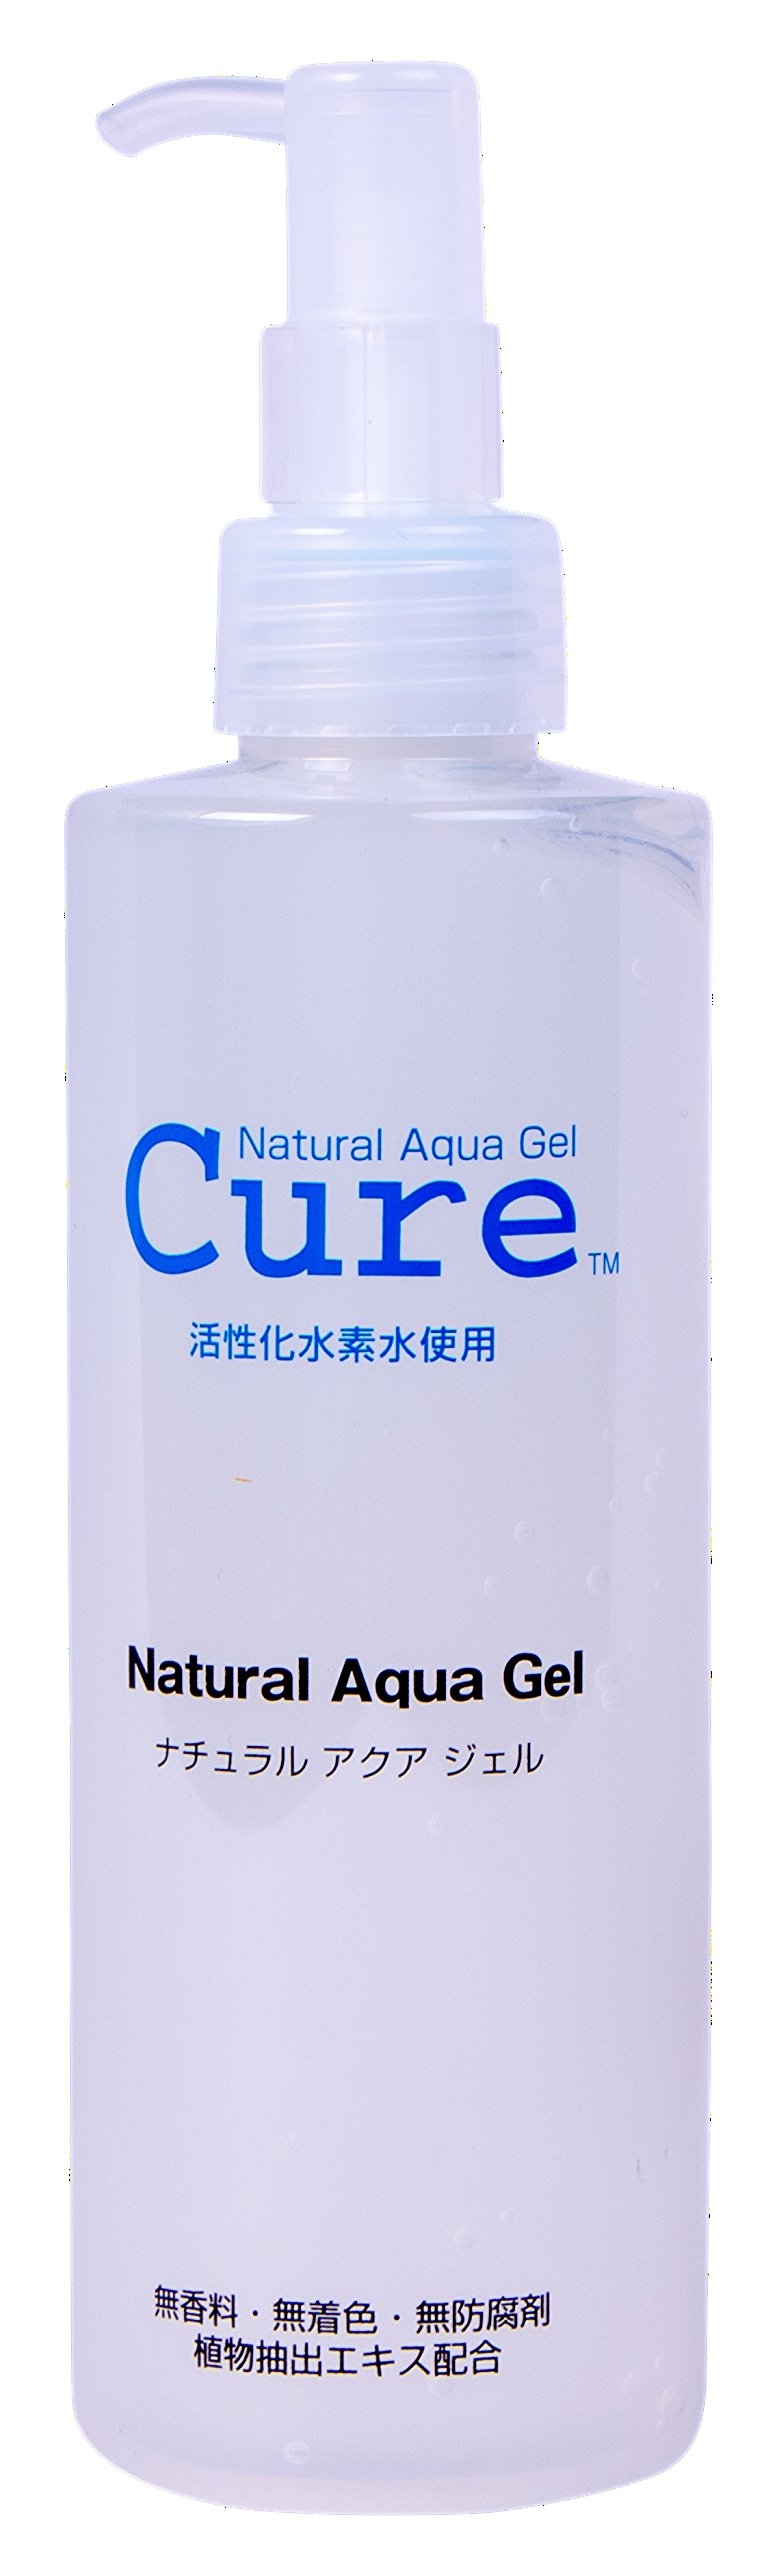 TOYO Cure Natural Aqua Gel - Hydrogen Activated Water Skin Exfoliator Suitable for All Skin Types (8.5 Ounce / 250 Milliliter)